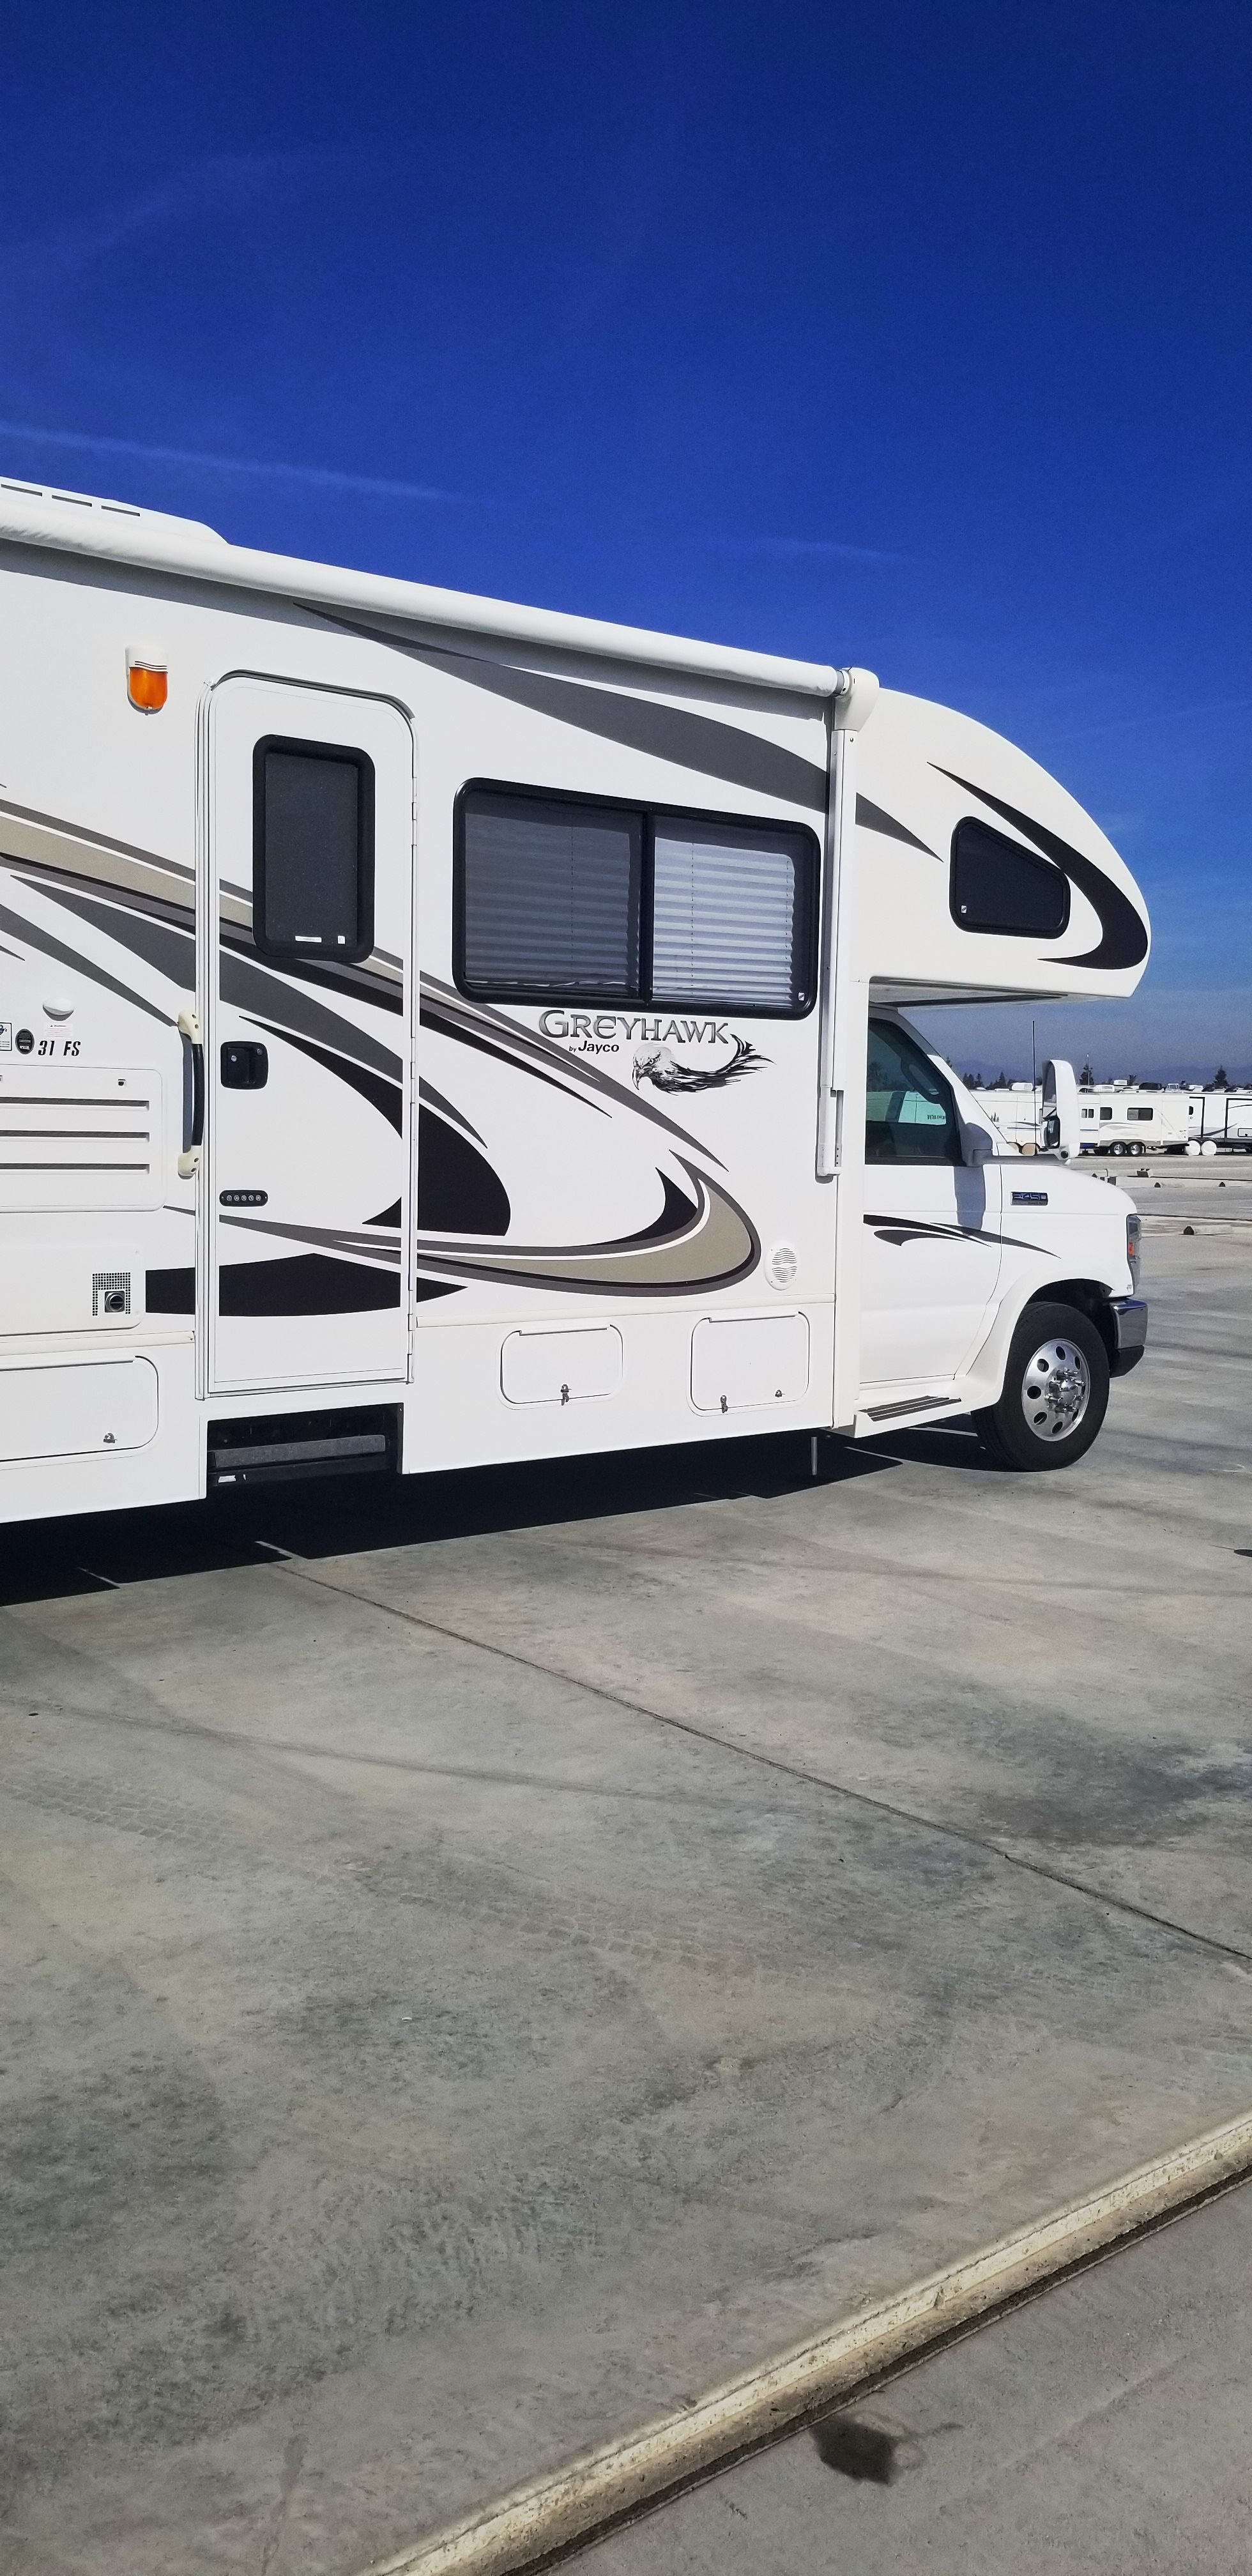 Super Clean. Jayco Greyhawk 2013